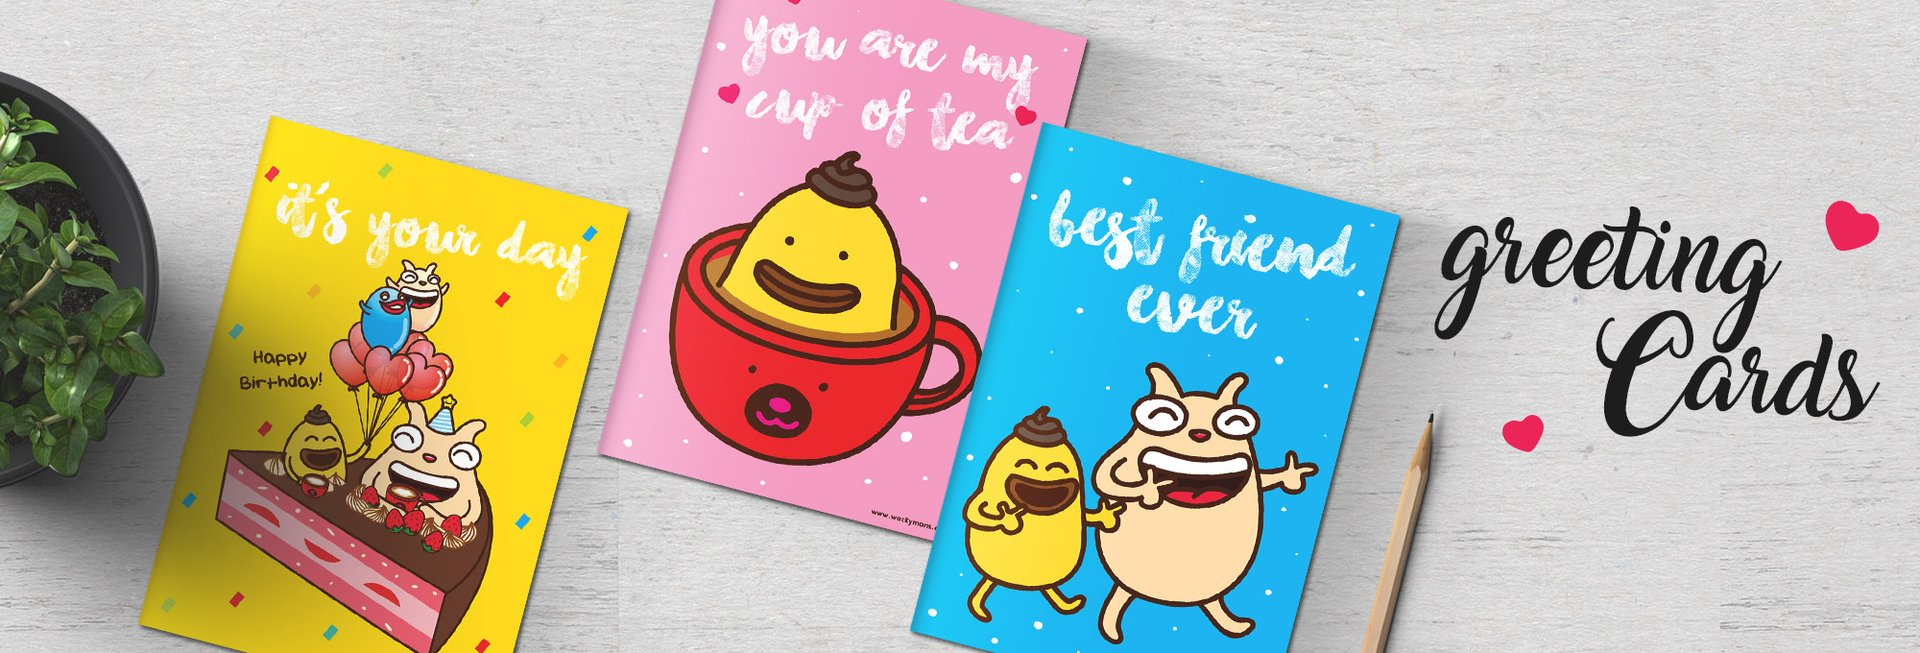 Wackymons new friendship greeting card designs available now!